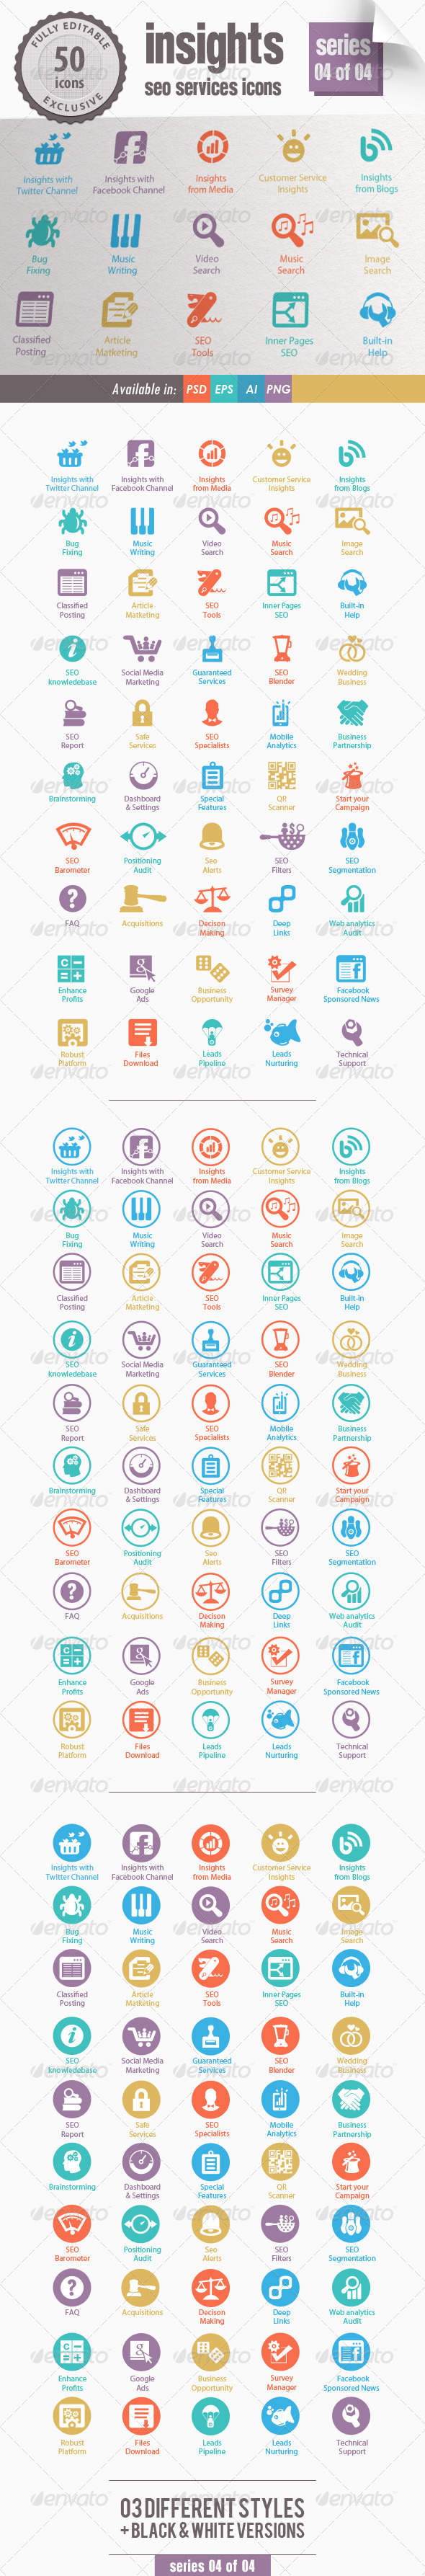 Insights SEO Services Icons - Series 04 of 04 - Web Icons